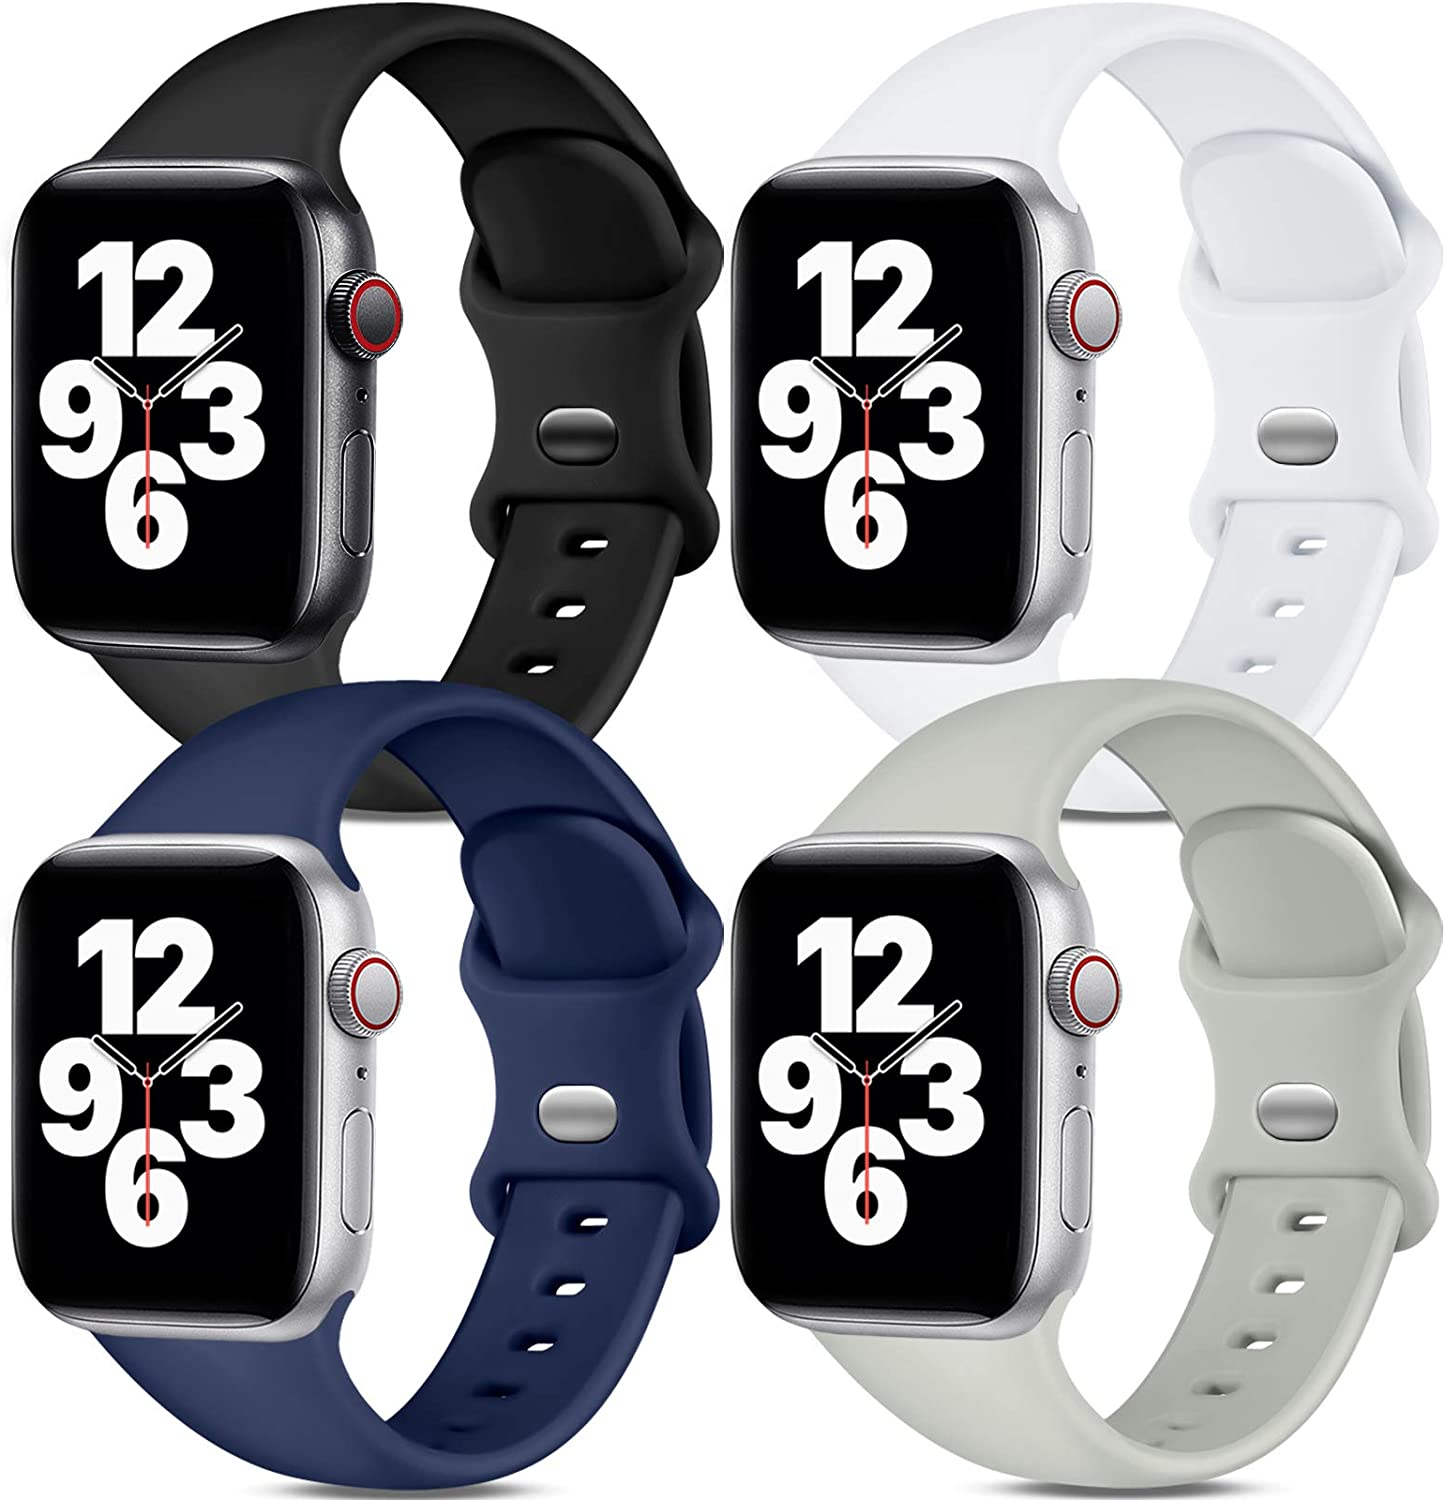 Dirrelo Band Compatible with Apple Watch Bands 42mm 44mm, [4-Pack] Soft Silicone Strap Wristbands for iWatch Series 3 5 6 4 2 1 SE Women Men, Small Black, White, Dark Blue, Gray